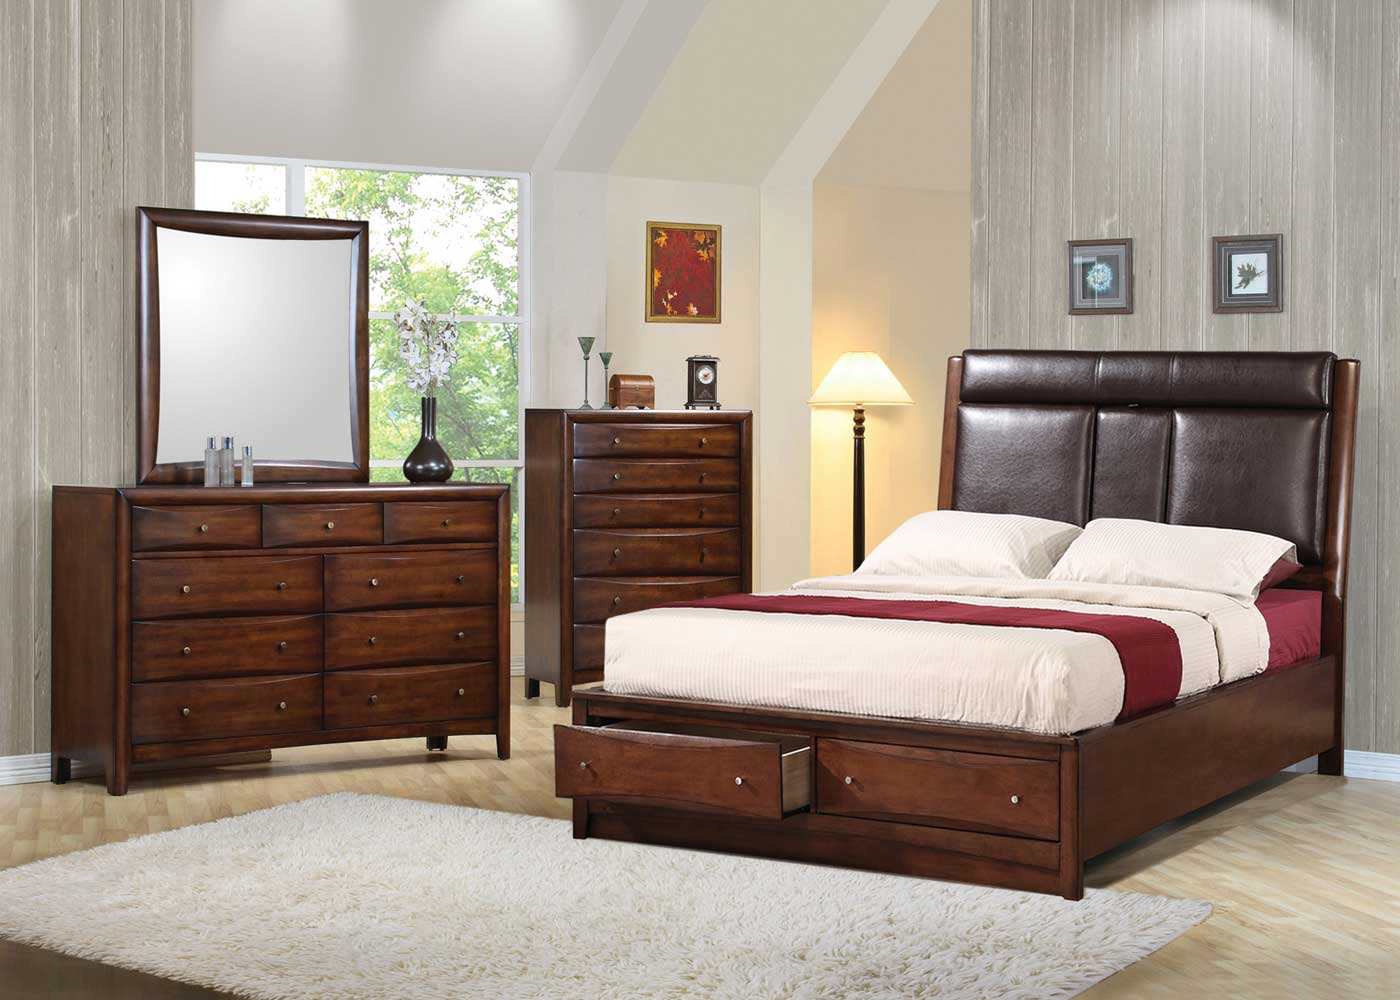 Coaster Hillary Upholstered Storage Bedroom Set - Warm Brown